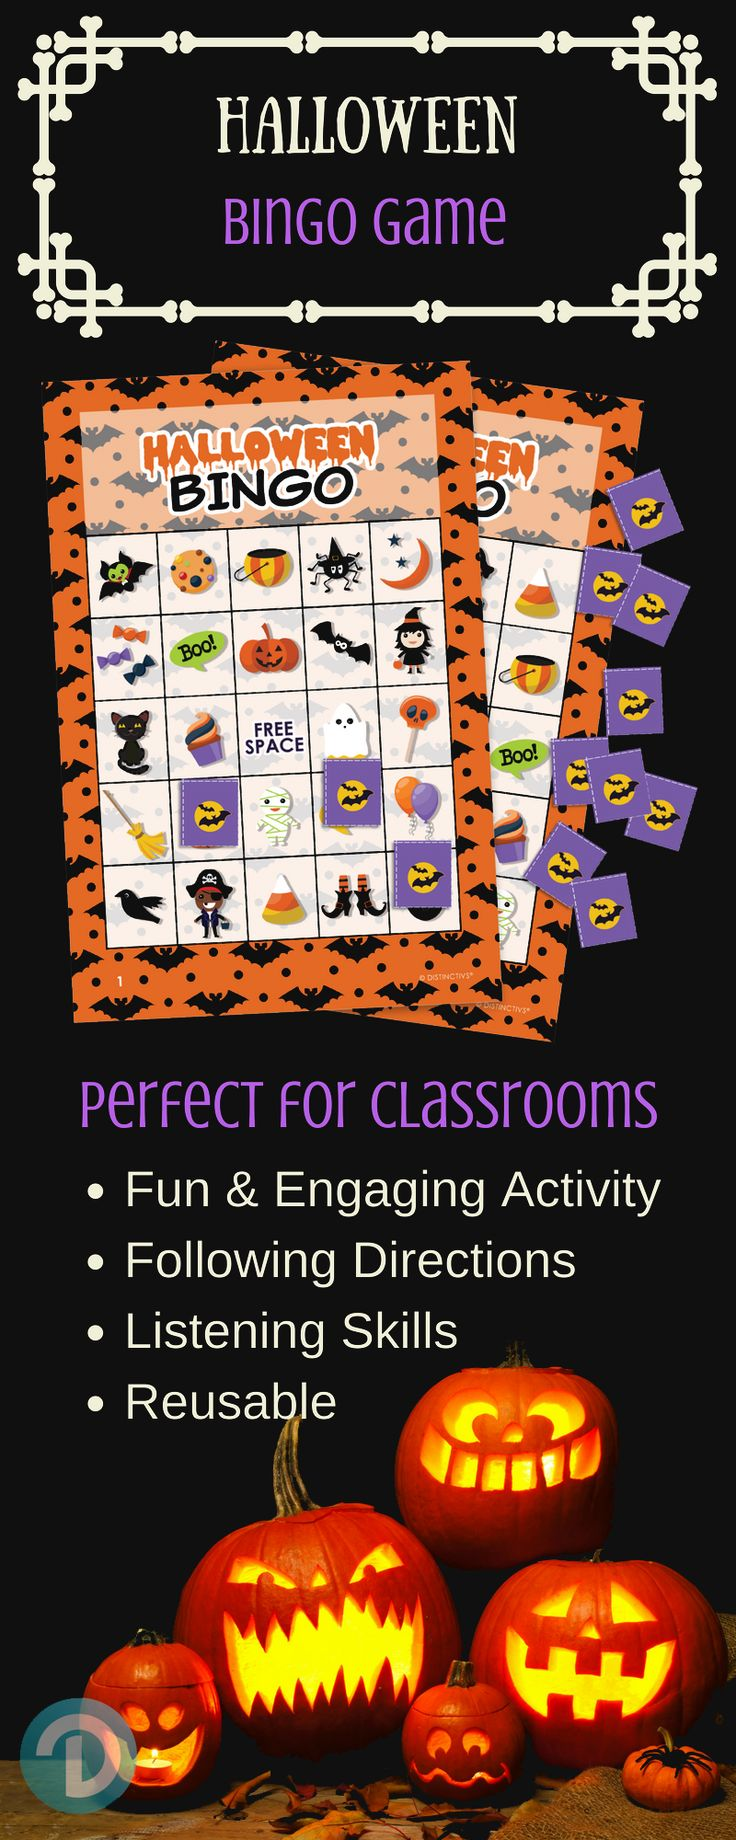 Halloween Bingo Game Set - for up to 24 Players.  Perfect Family-FriendlyHalloween Game for Children. #halloweenbingo #halloweenkids #halloweenparty